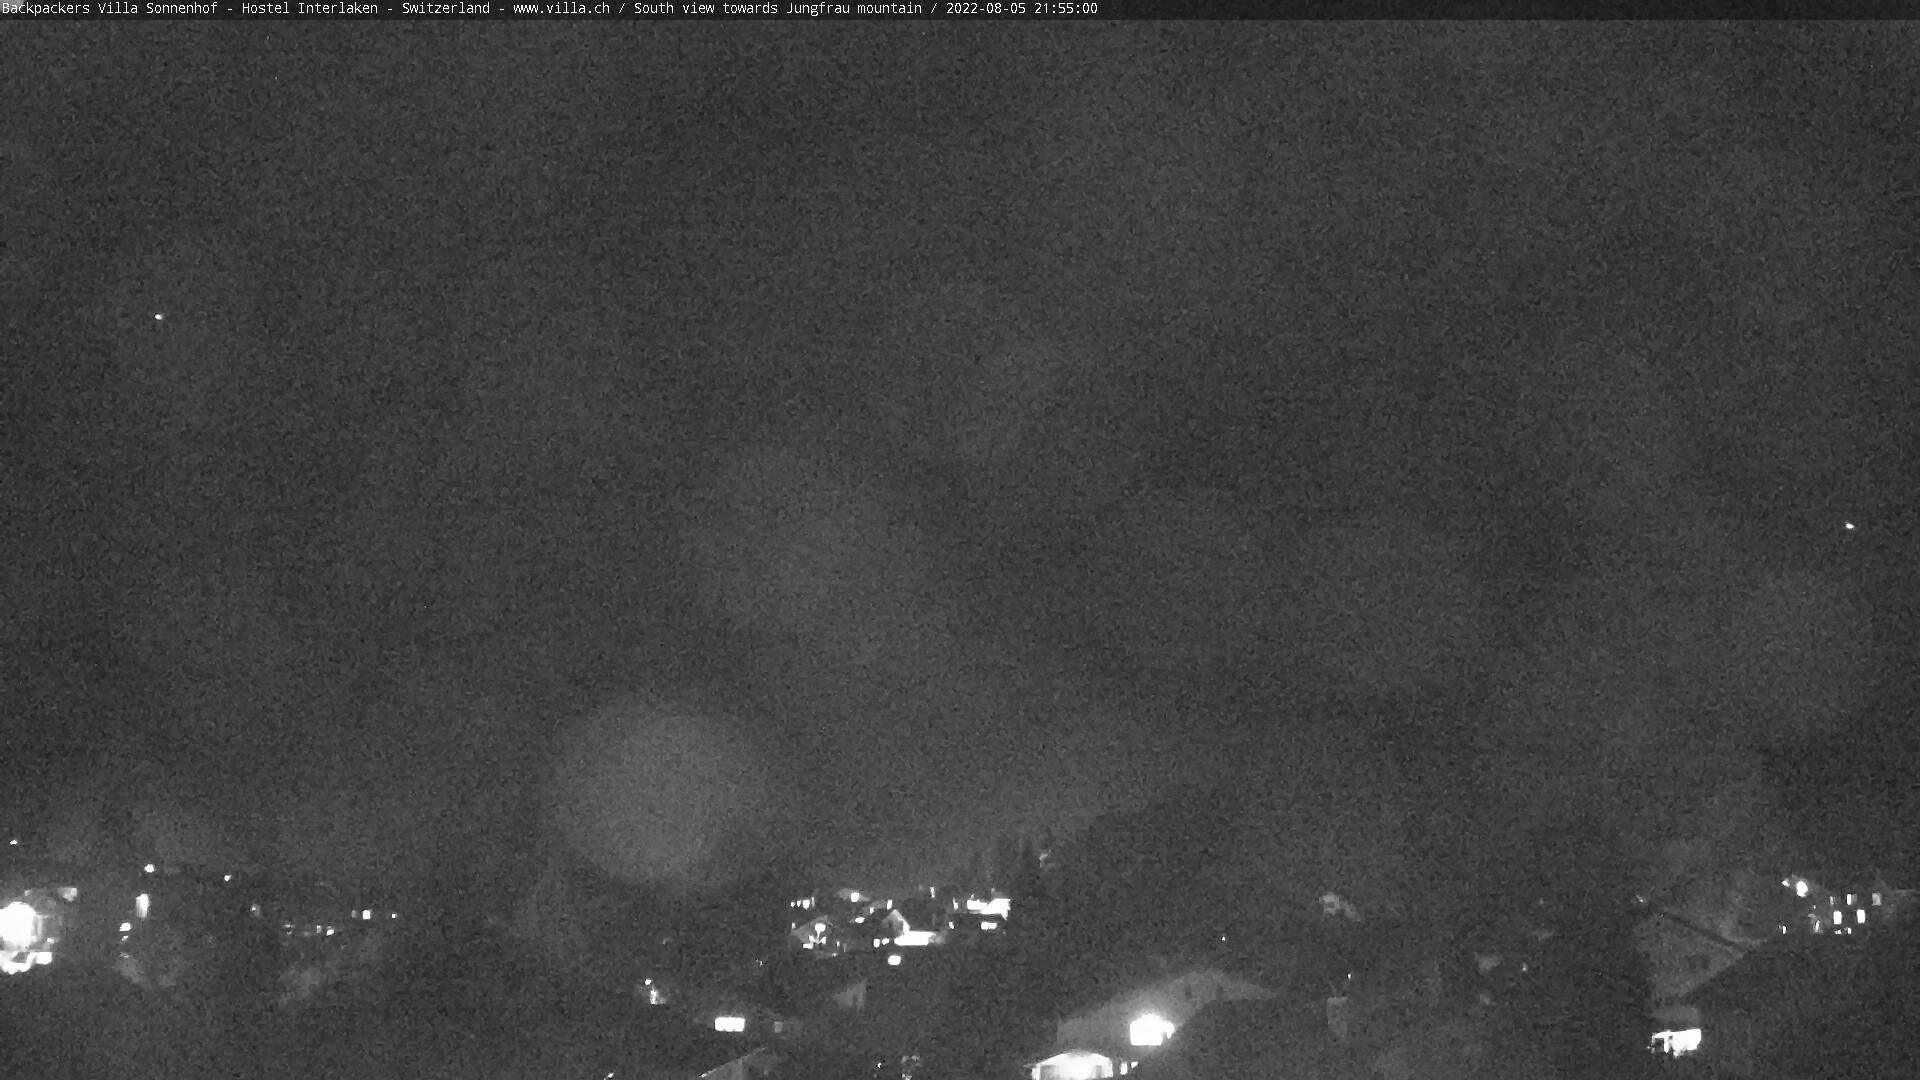 View from Backpackers Villa's top floor towards Mount Jungfrau